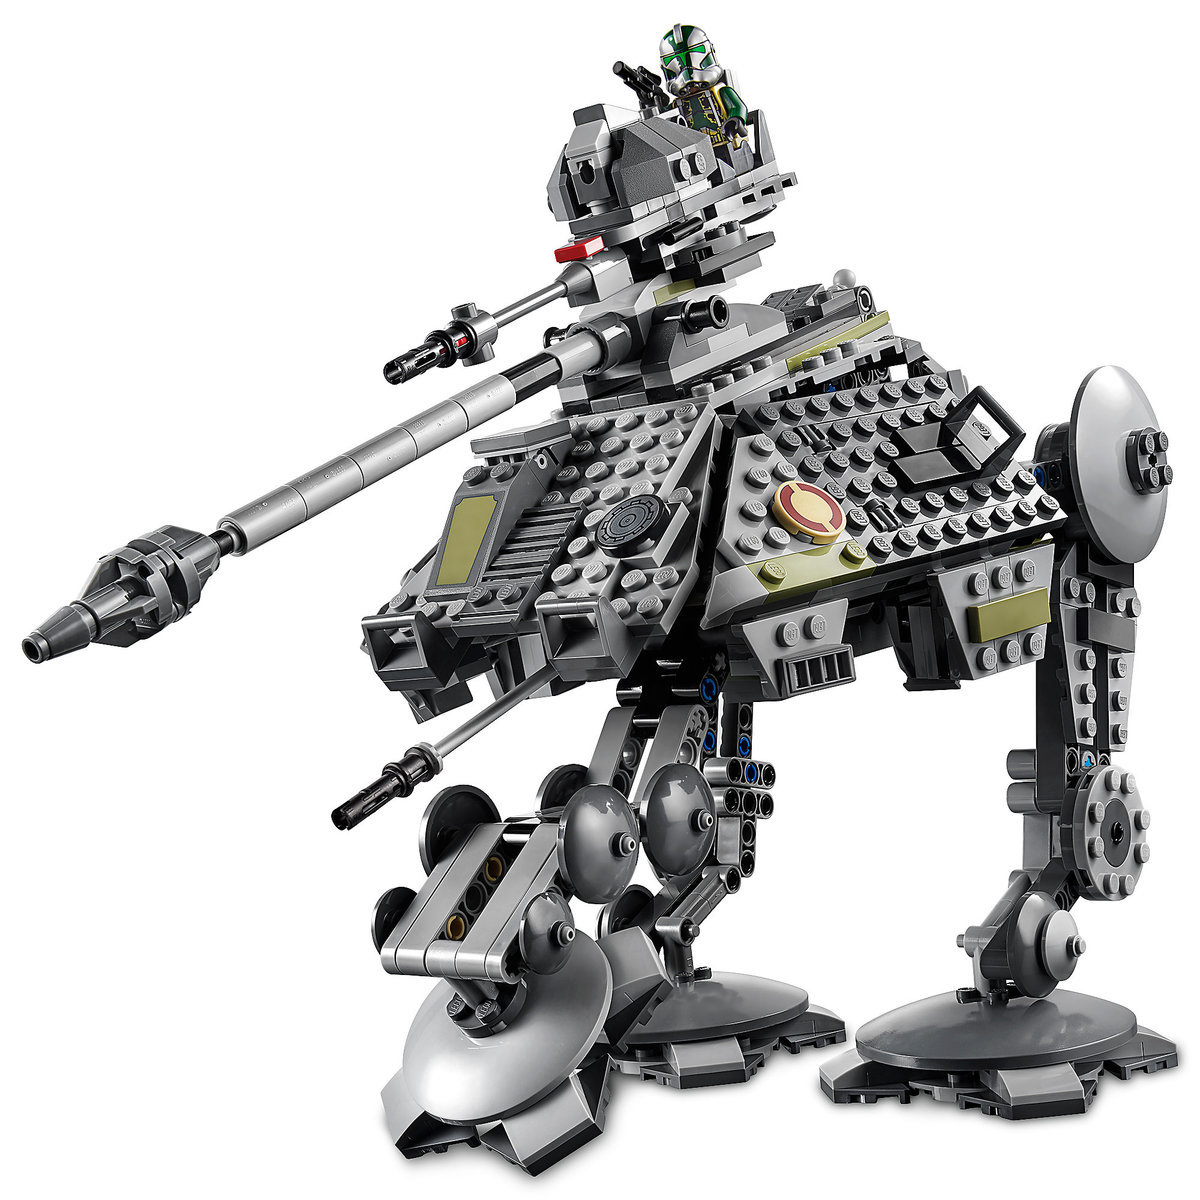 By Wars Ap Lego At Walker Playset Star TJKcFl3u1